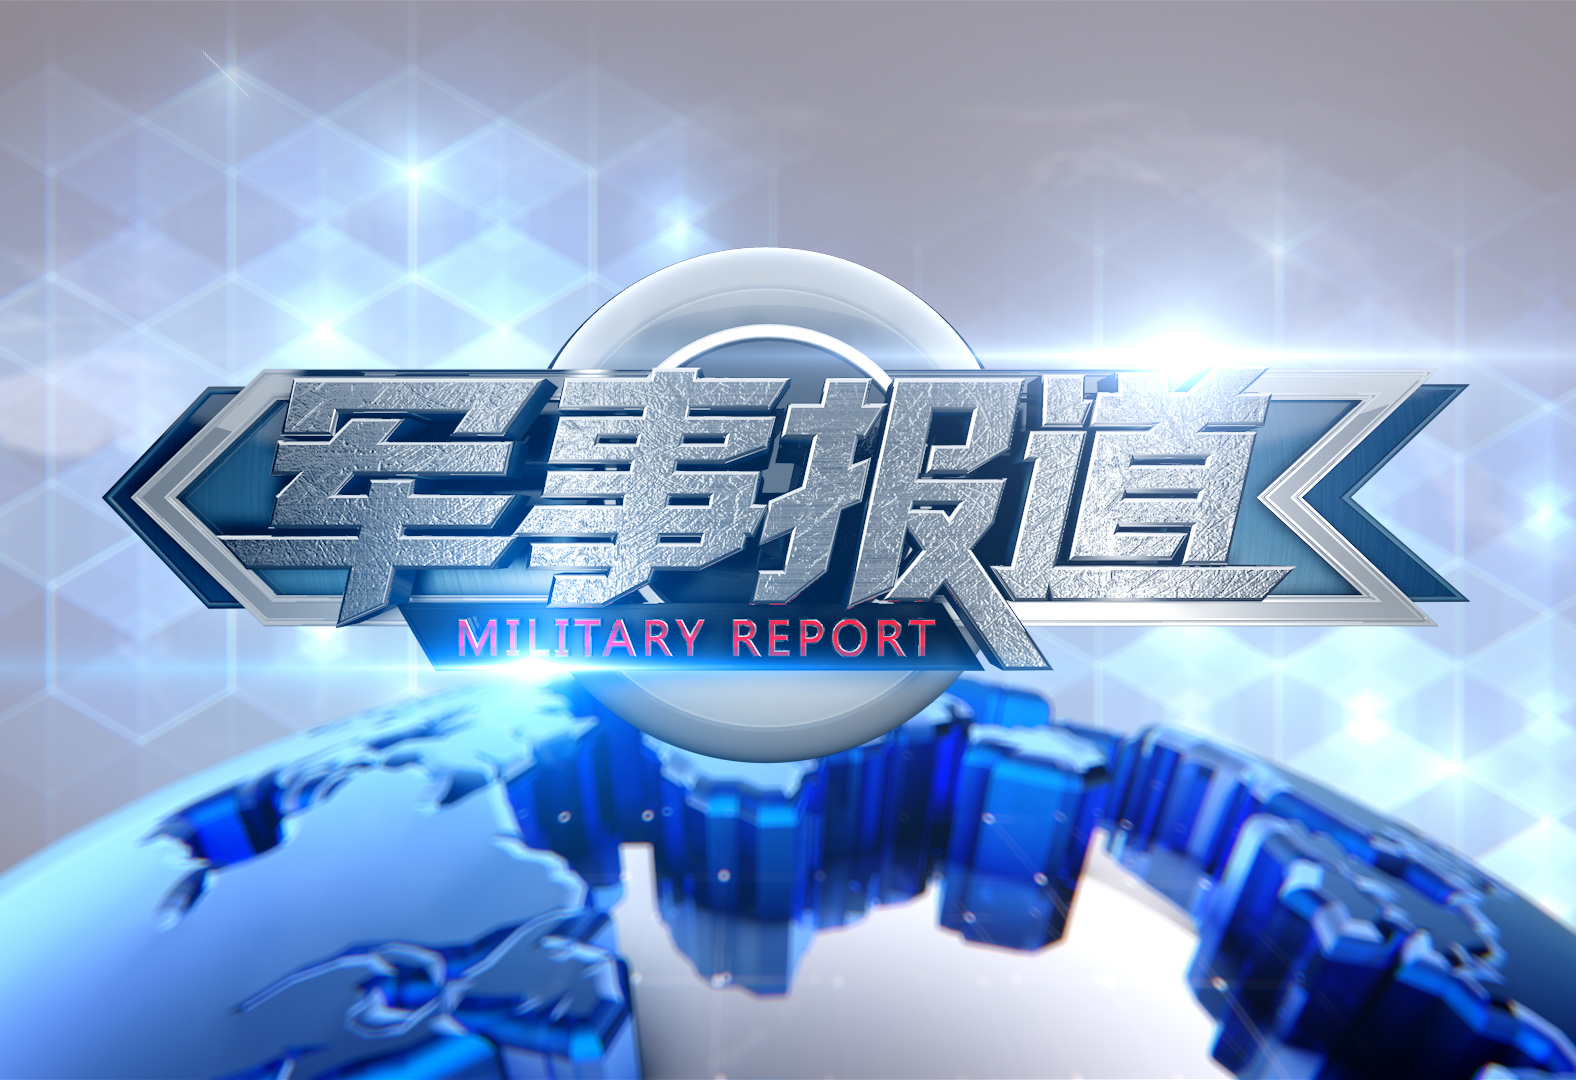 MILITARY REPORT